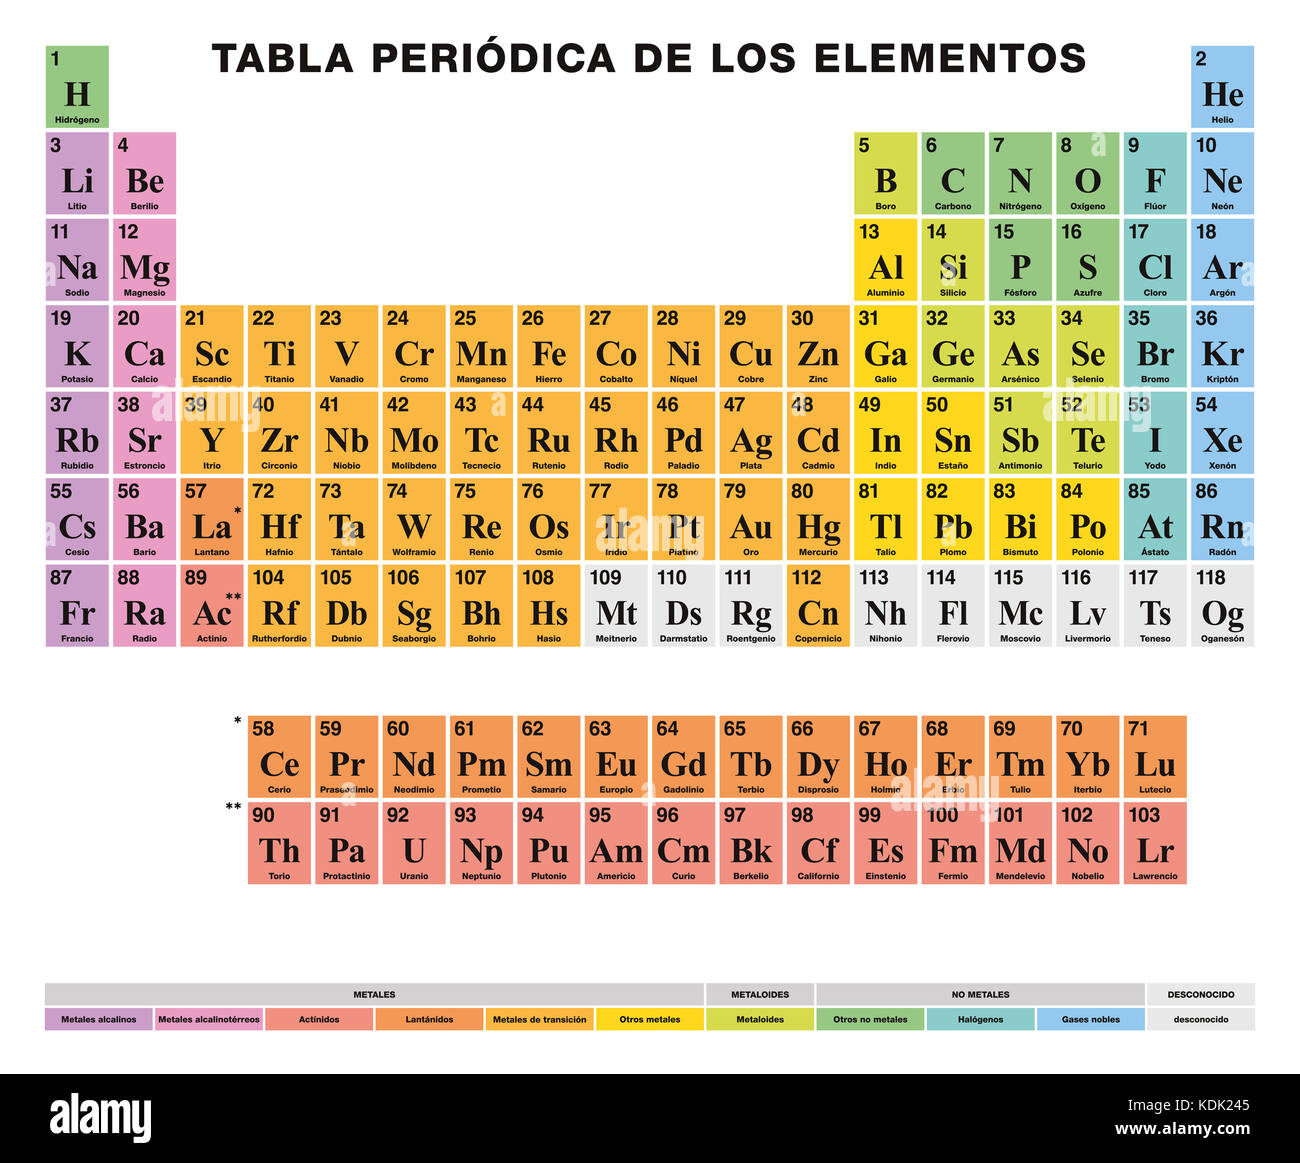 periodic table of the elements spanish labeling tabular arrangement of 118 chemical elements atomic numbers symbols names and color cells - Periodic Table Atomic Number 19